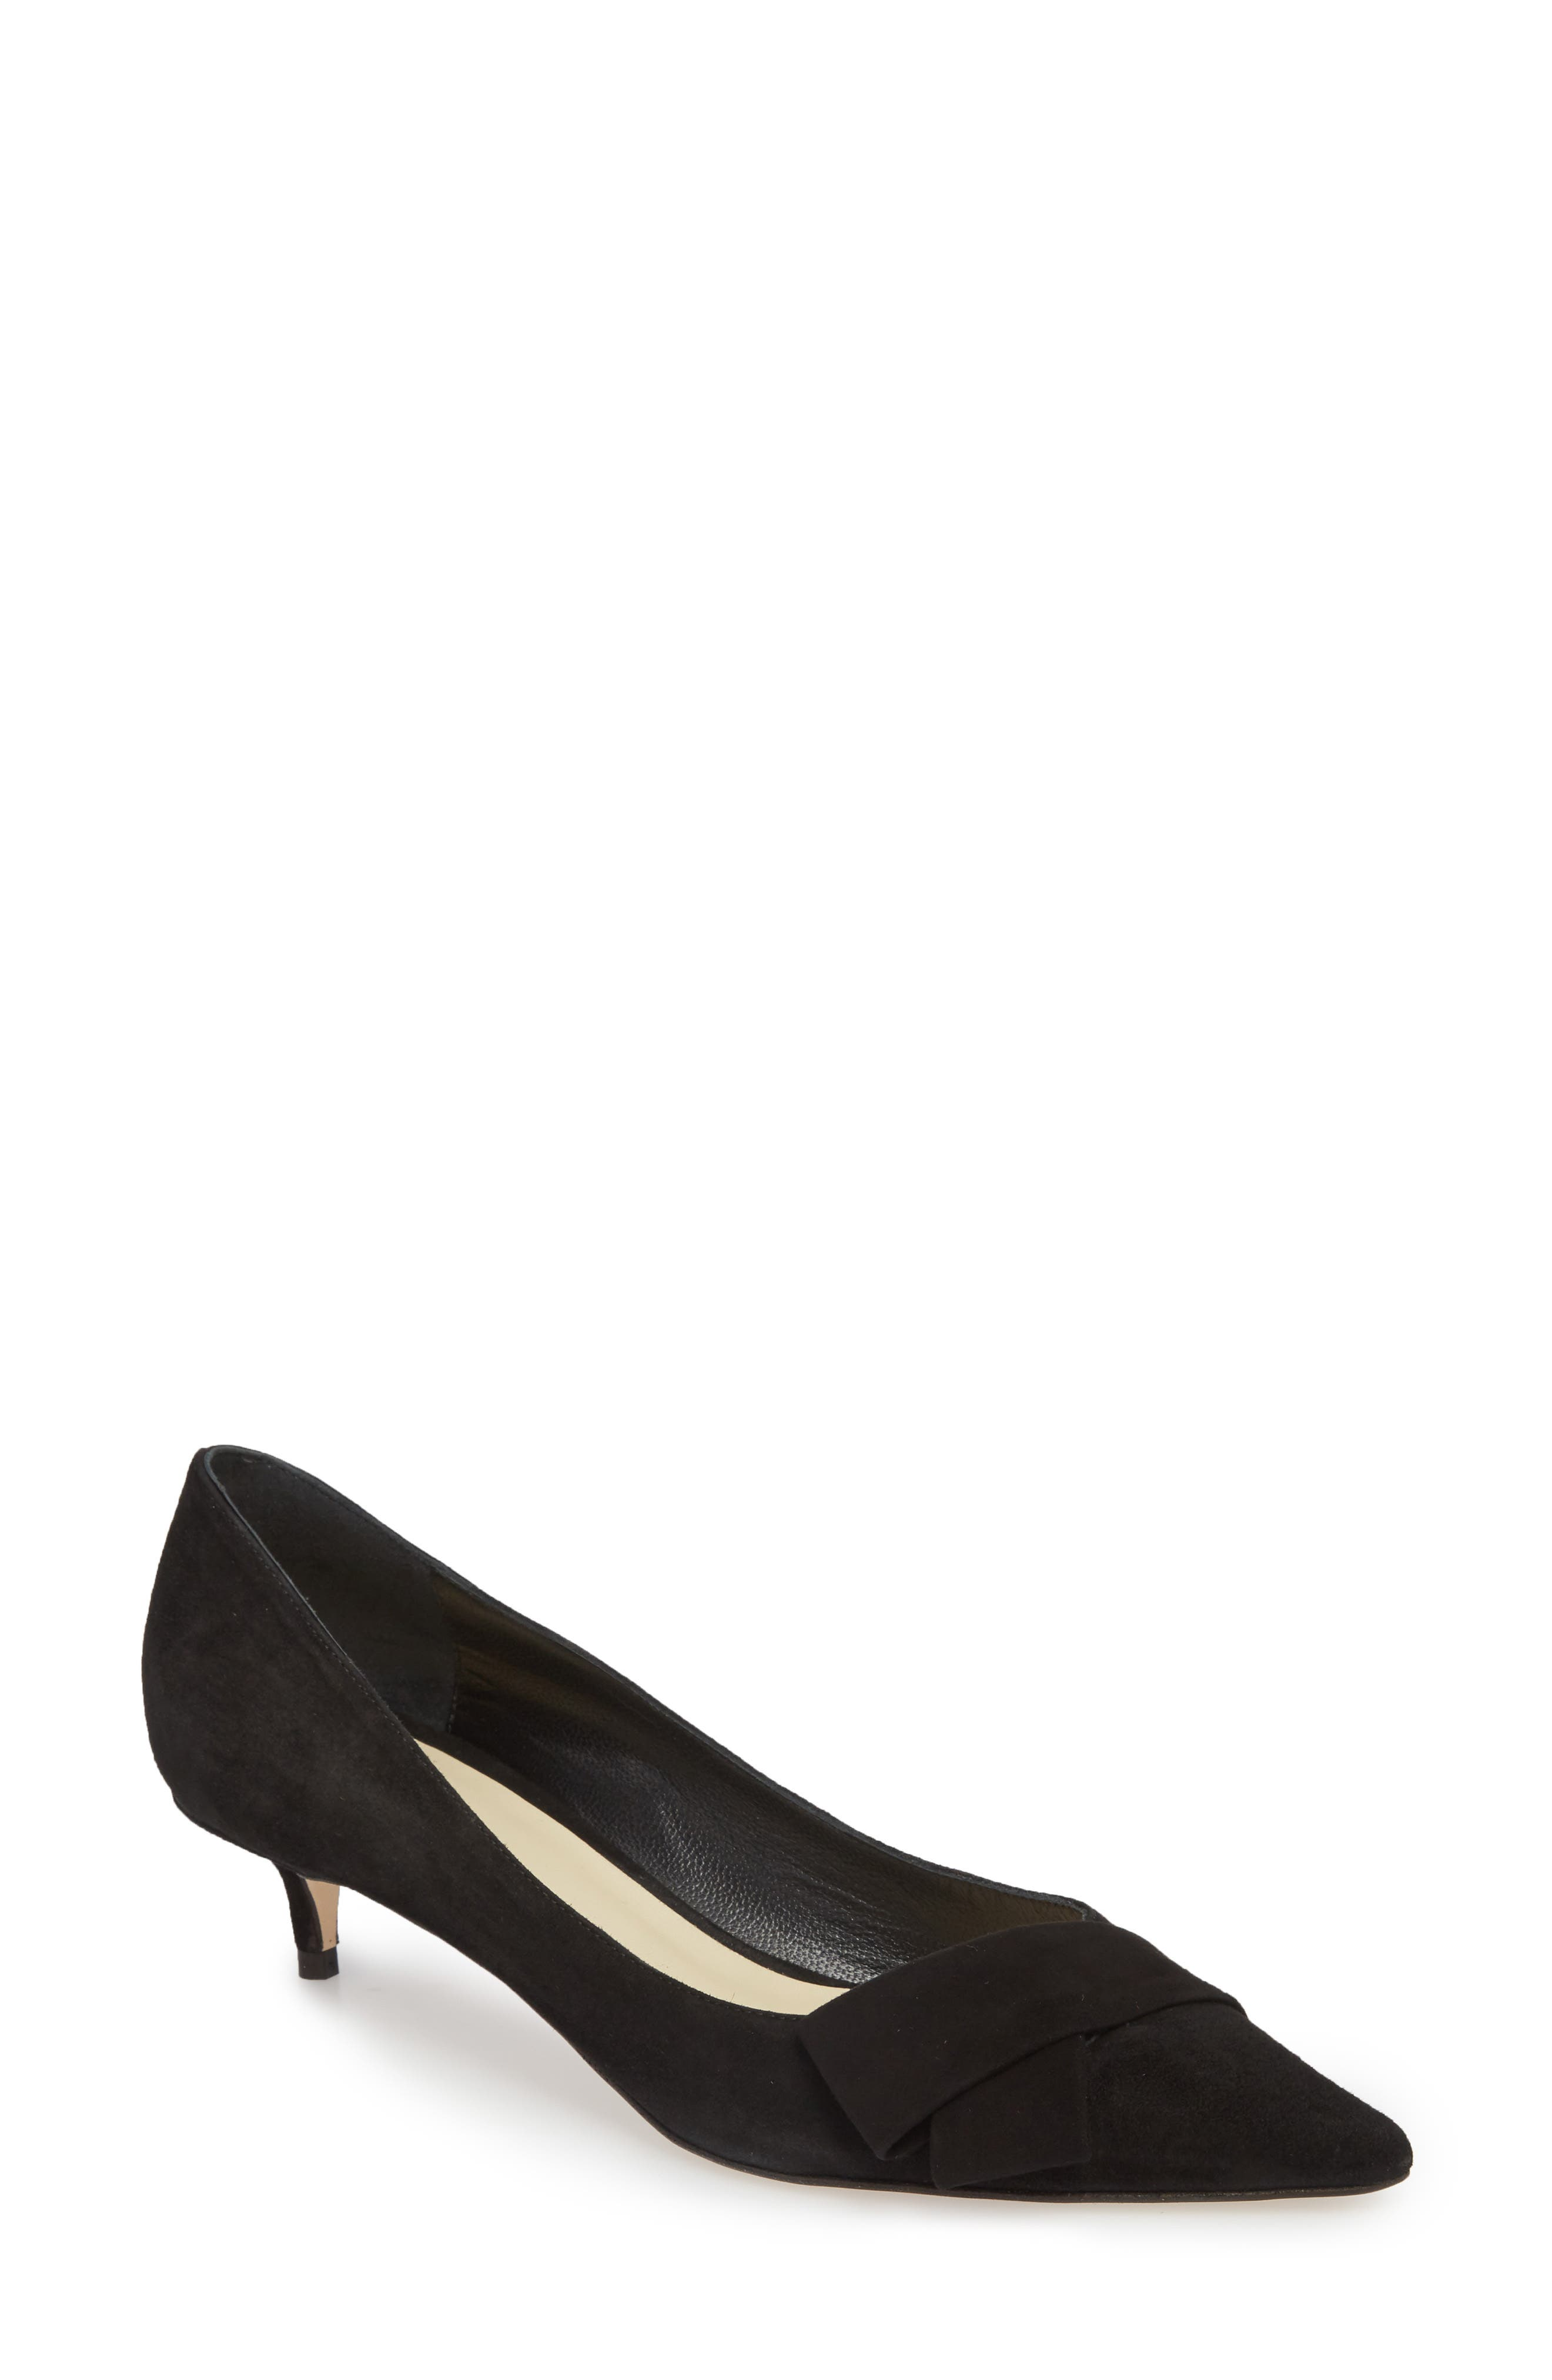 Butter Bliss Pointy Toe Pump,                             Main thumbnail 1, color,                             Black Suede